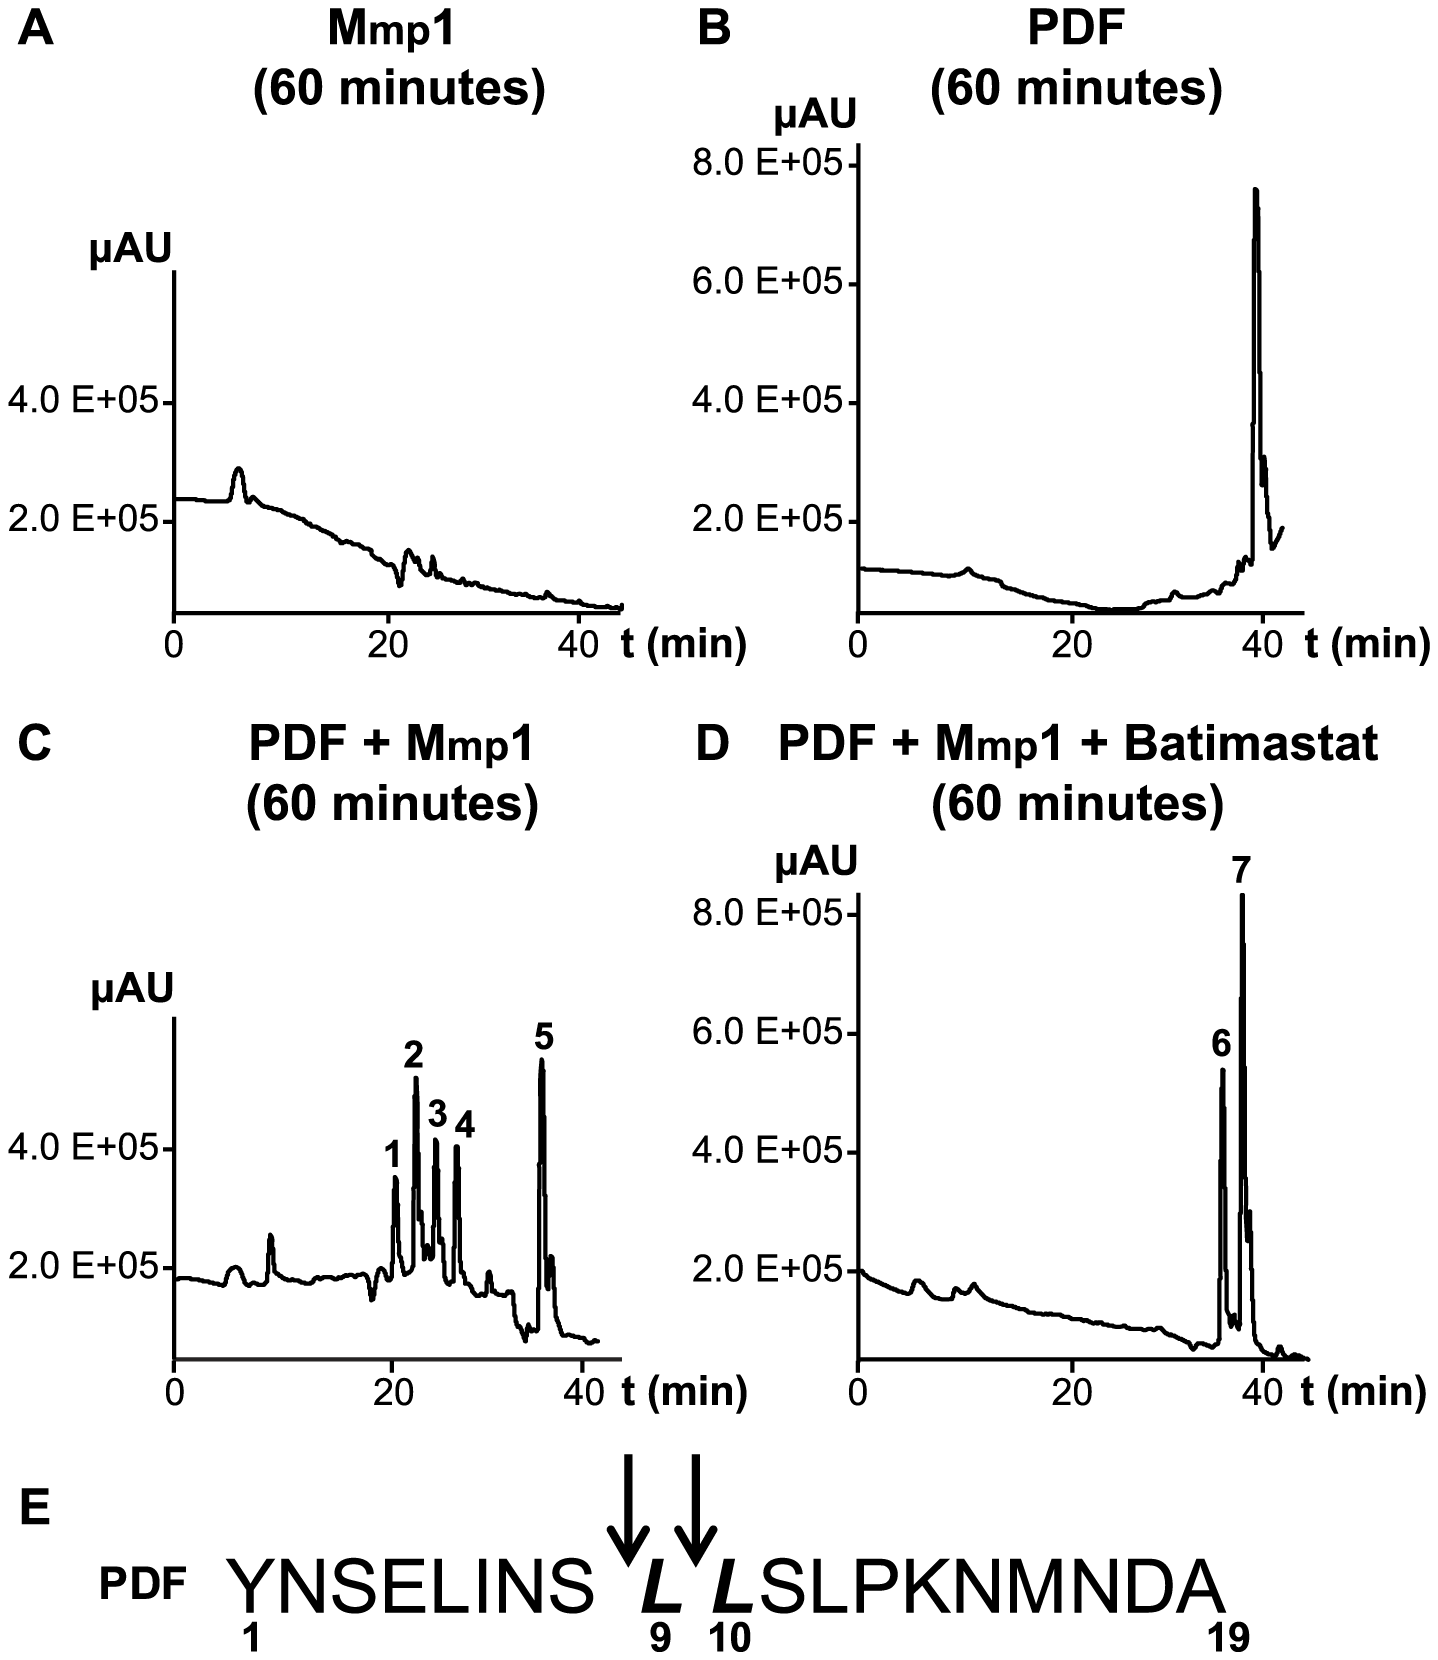 Mmp1 processes the PDF neuropeptide <i>in vitro</i>.